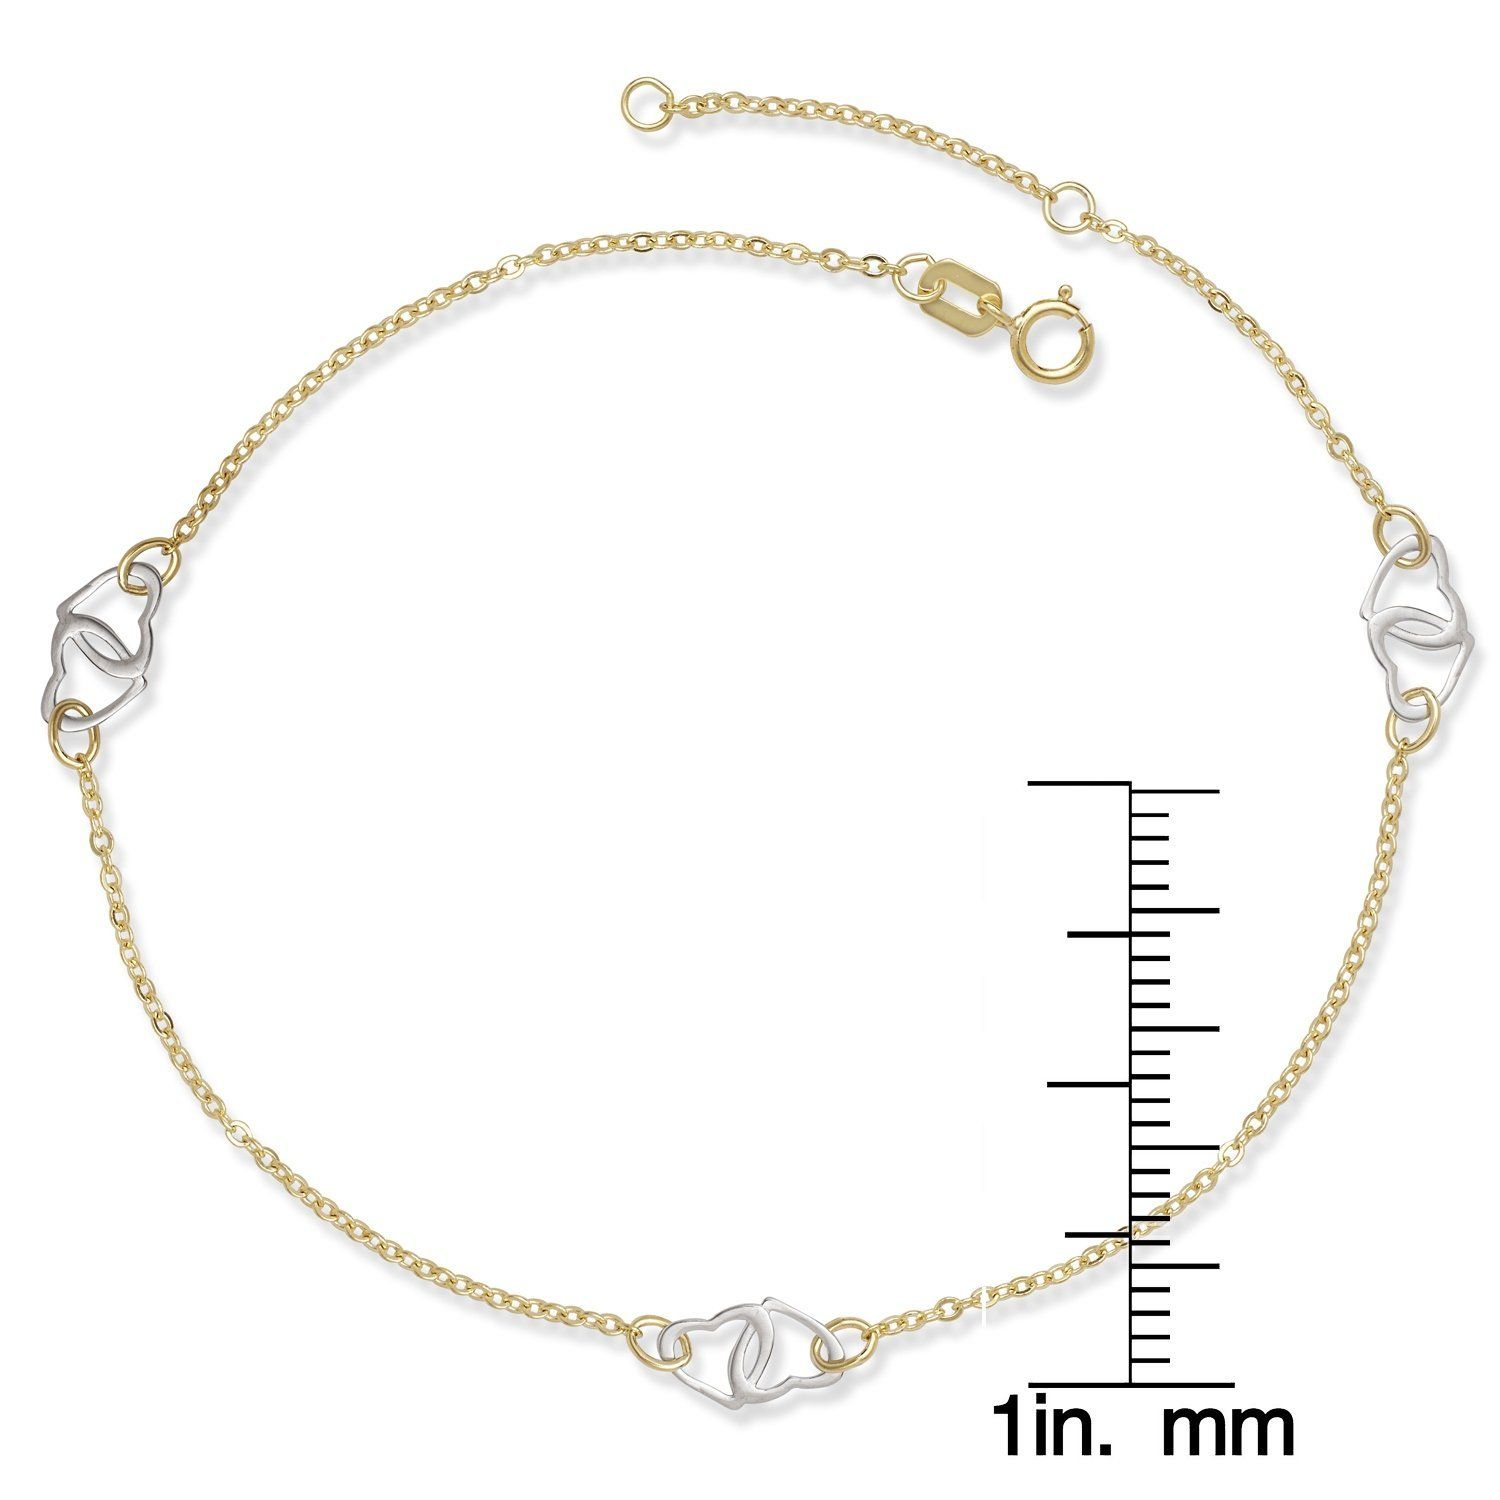 anklet rope c gold rdcl diamond solid and bracelet itm cut fine p chain